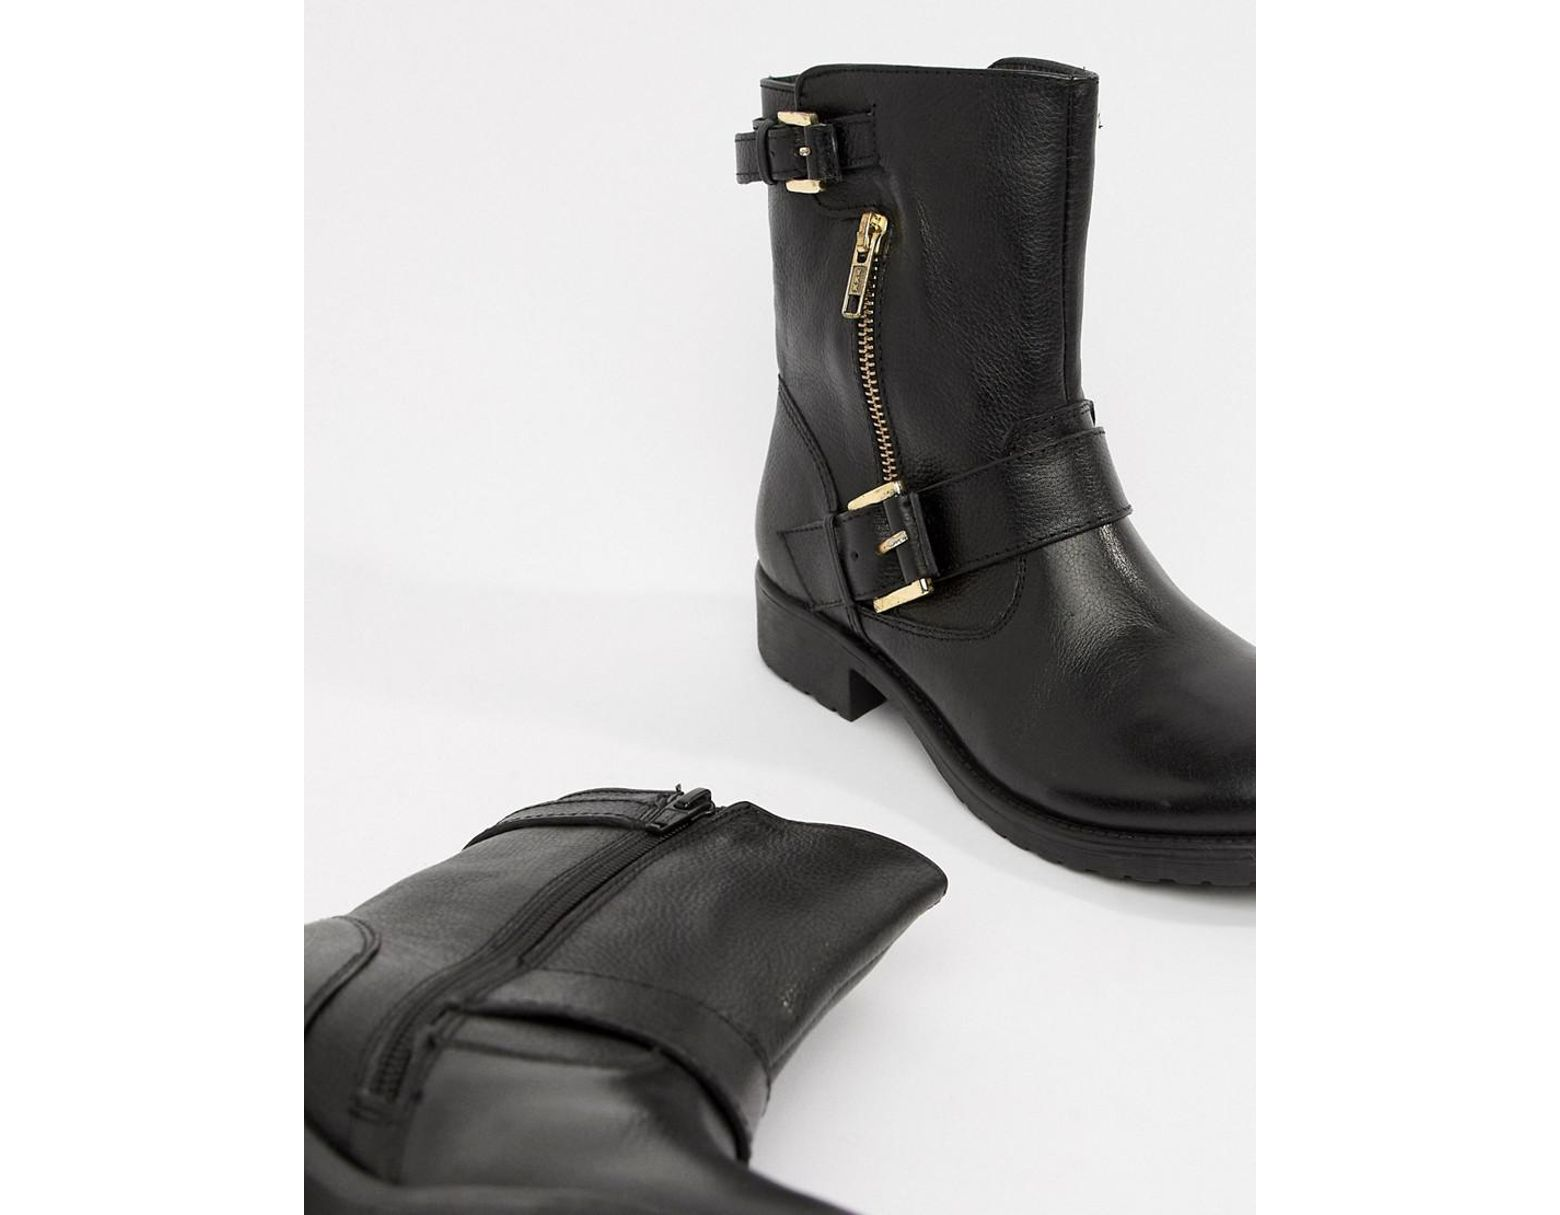 bf41fec03dc80 Dune Ripp Leather Ankle Boots in Black - Lyst